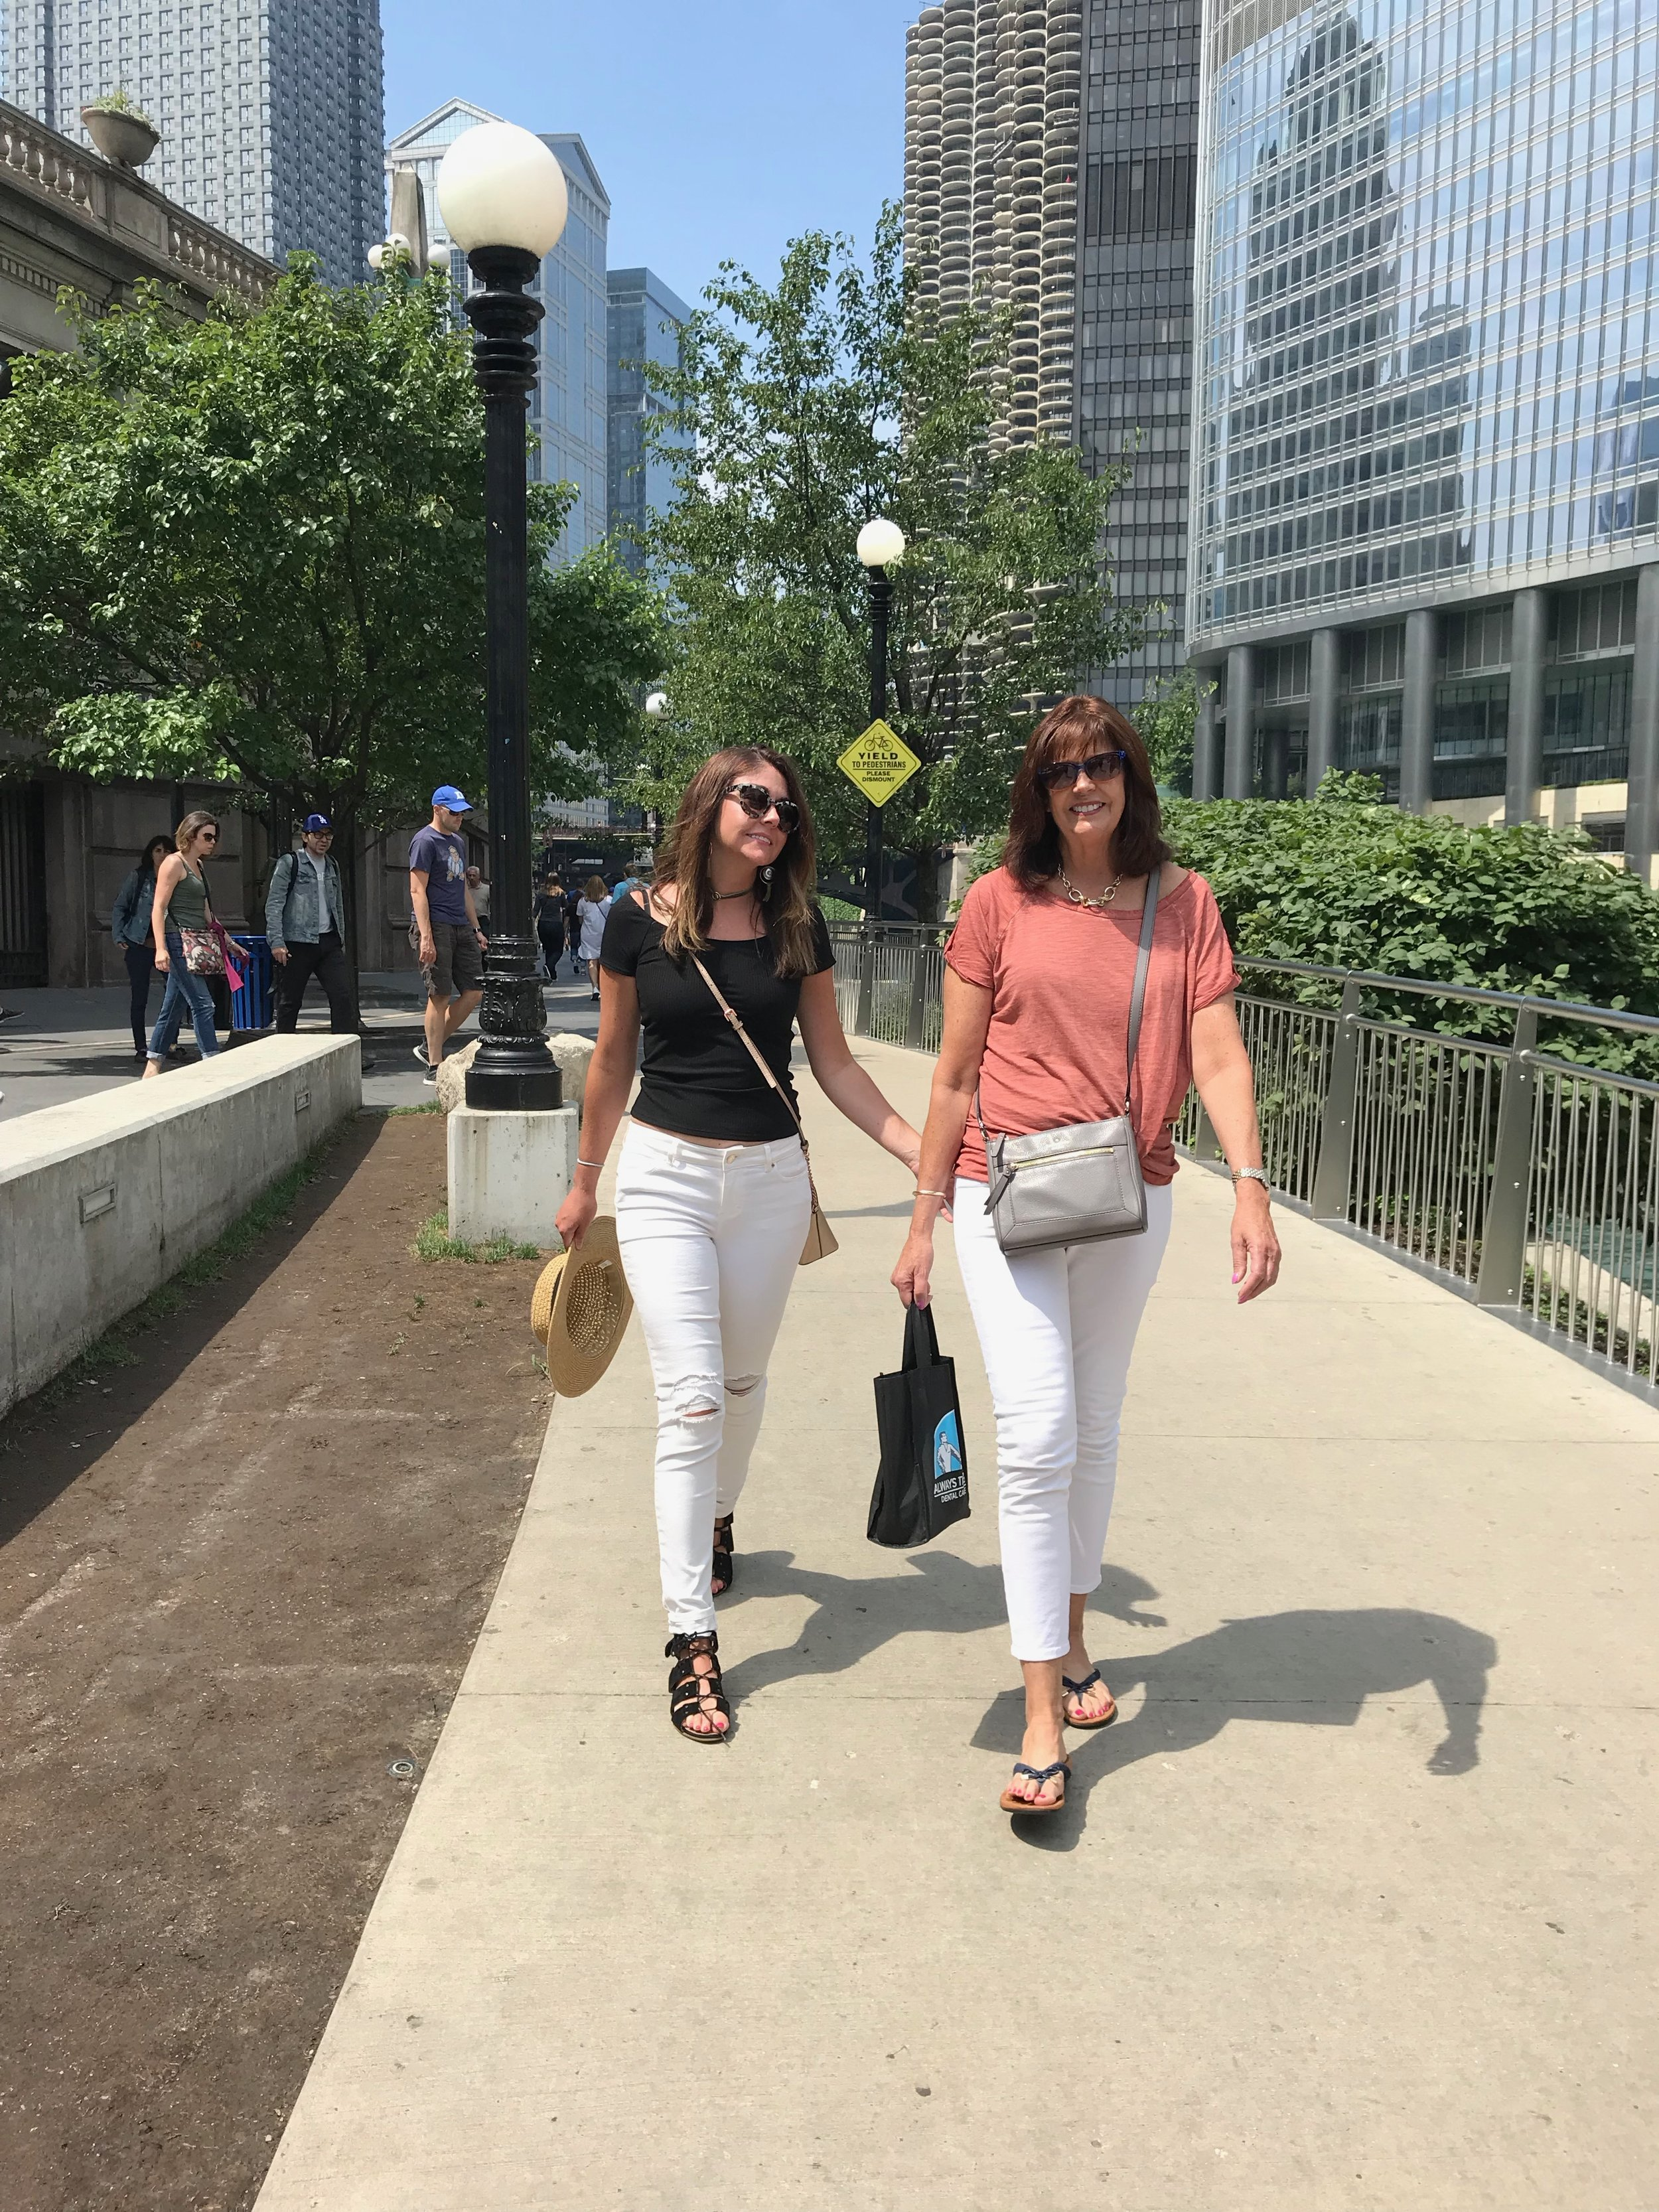 Chicago's Riverfront Walk in the Loop